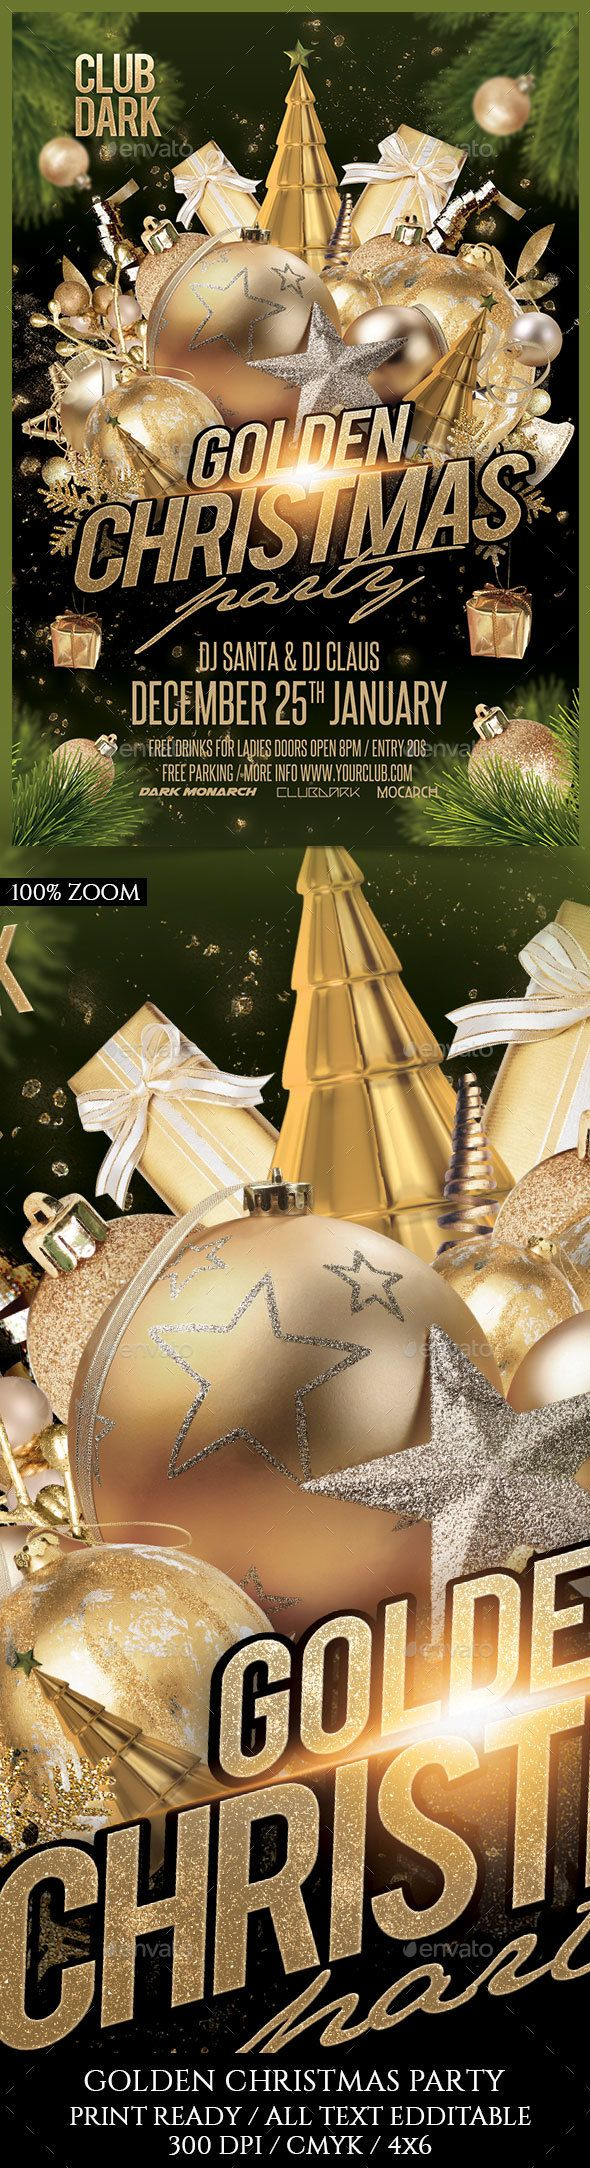 Golden Christmas Party by darkmonarch Golden Christmas Party Flyer Template PSD Super Easy to edit text and Elements Resolution: 300dpi CMYK color Well organized in fol